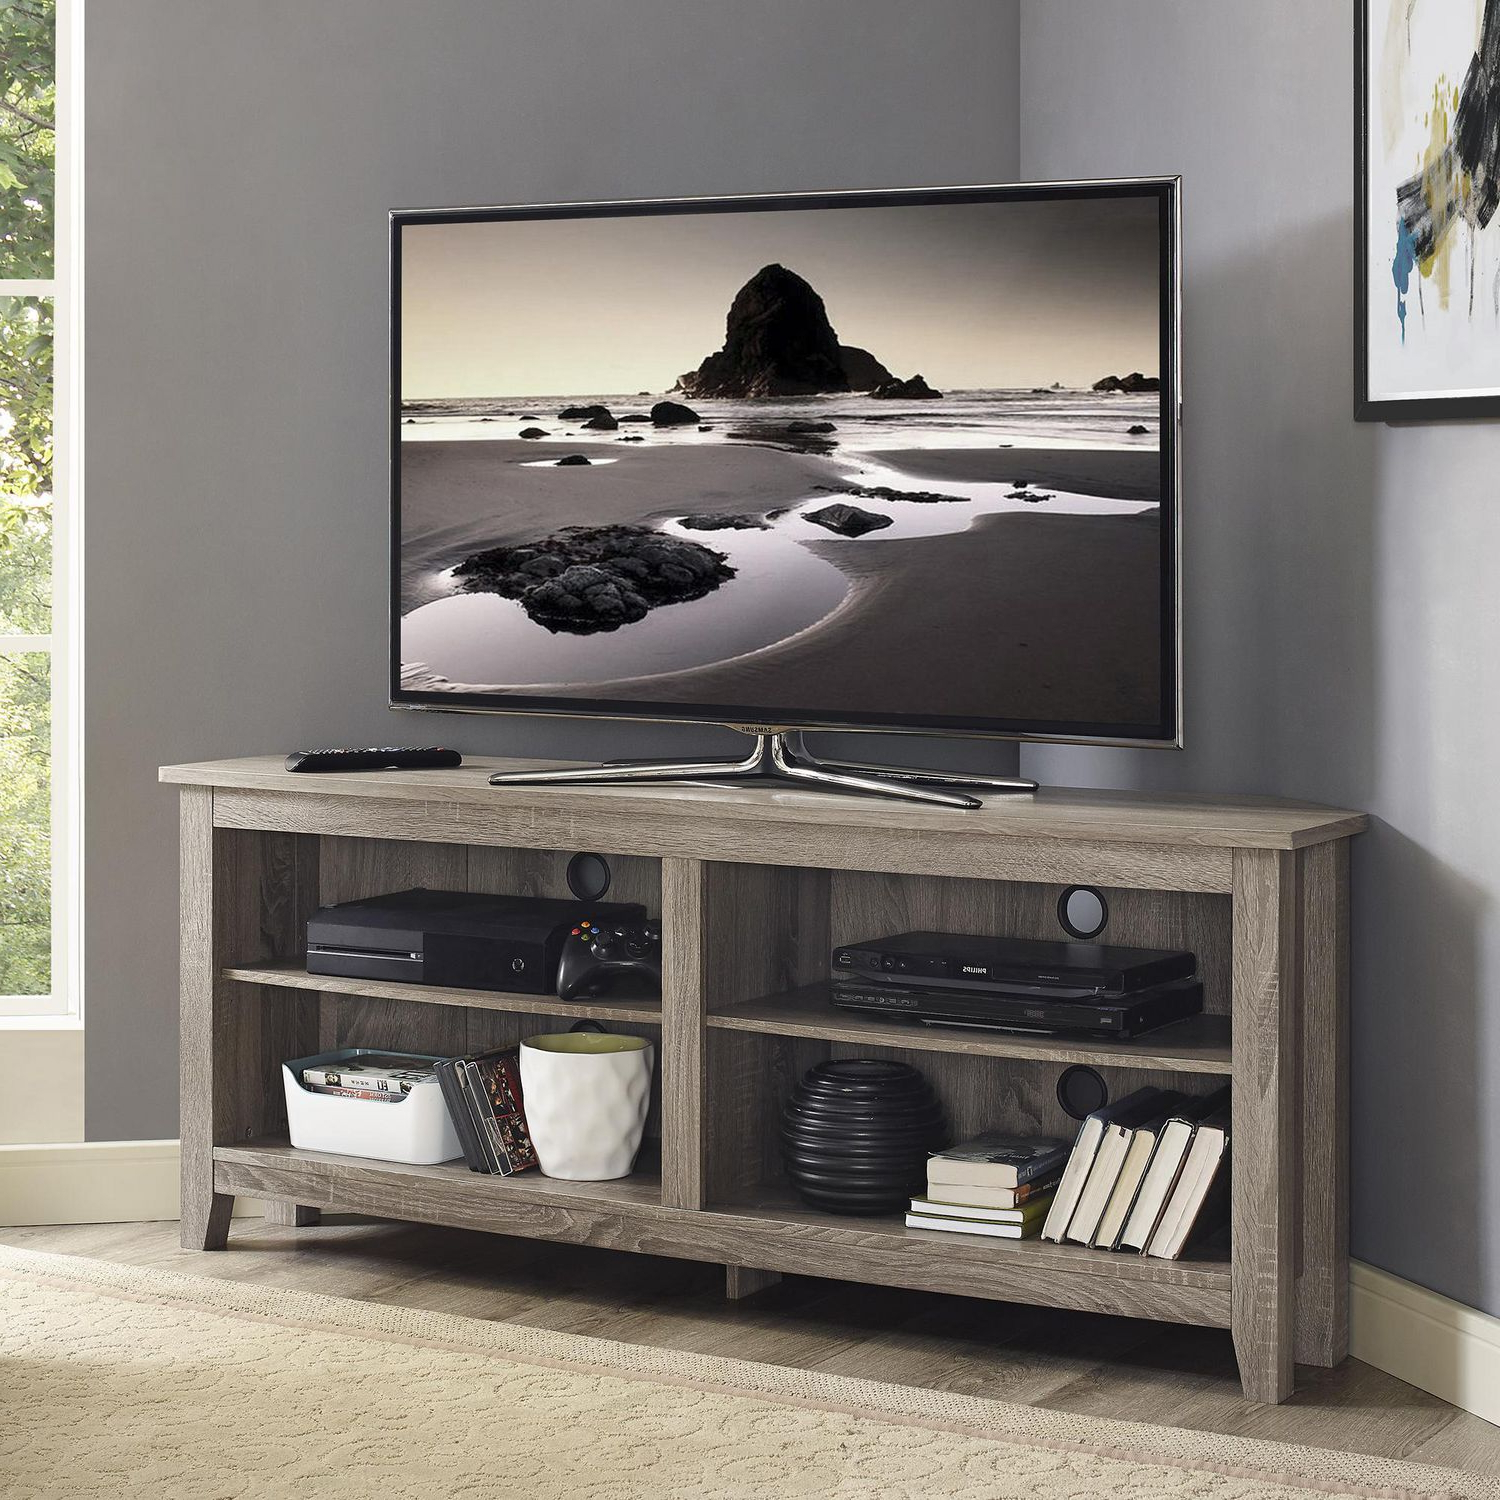 Manor Park Simple Farmhouse Corner Tv Stand For Tv's Up To In Geometric Corner Fit Glass Door Tv Stands (View 12 of 17)